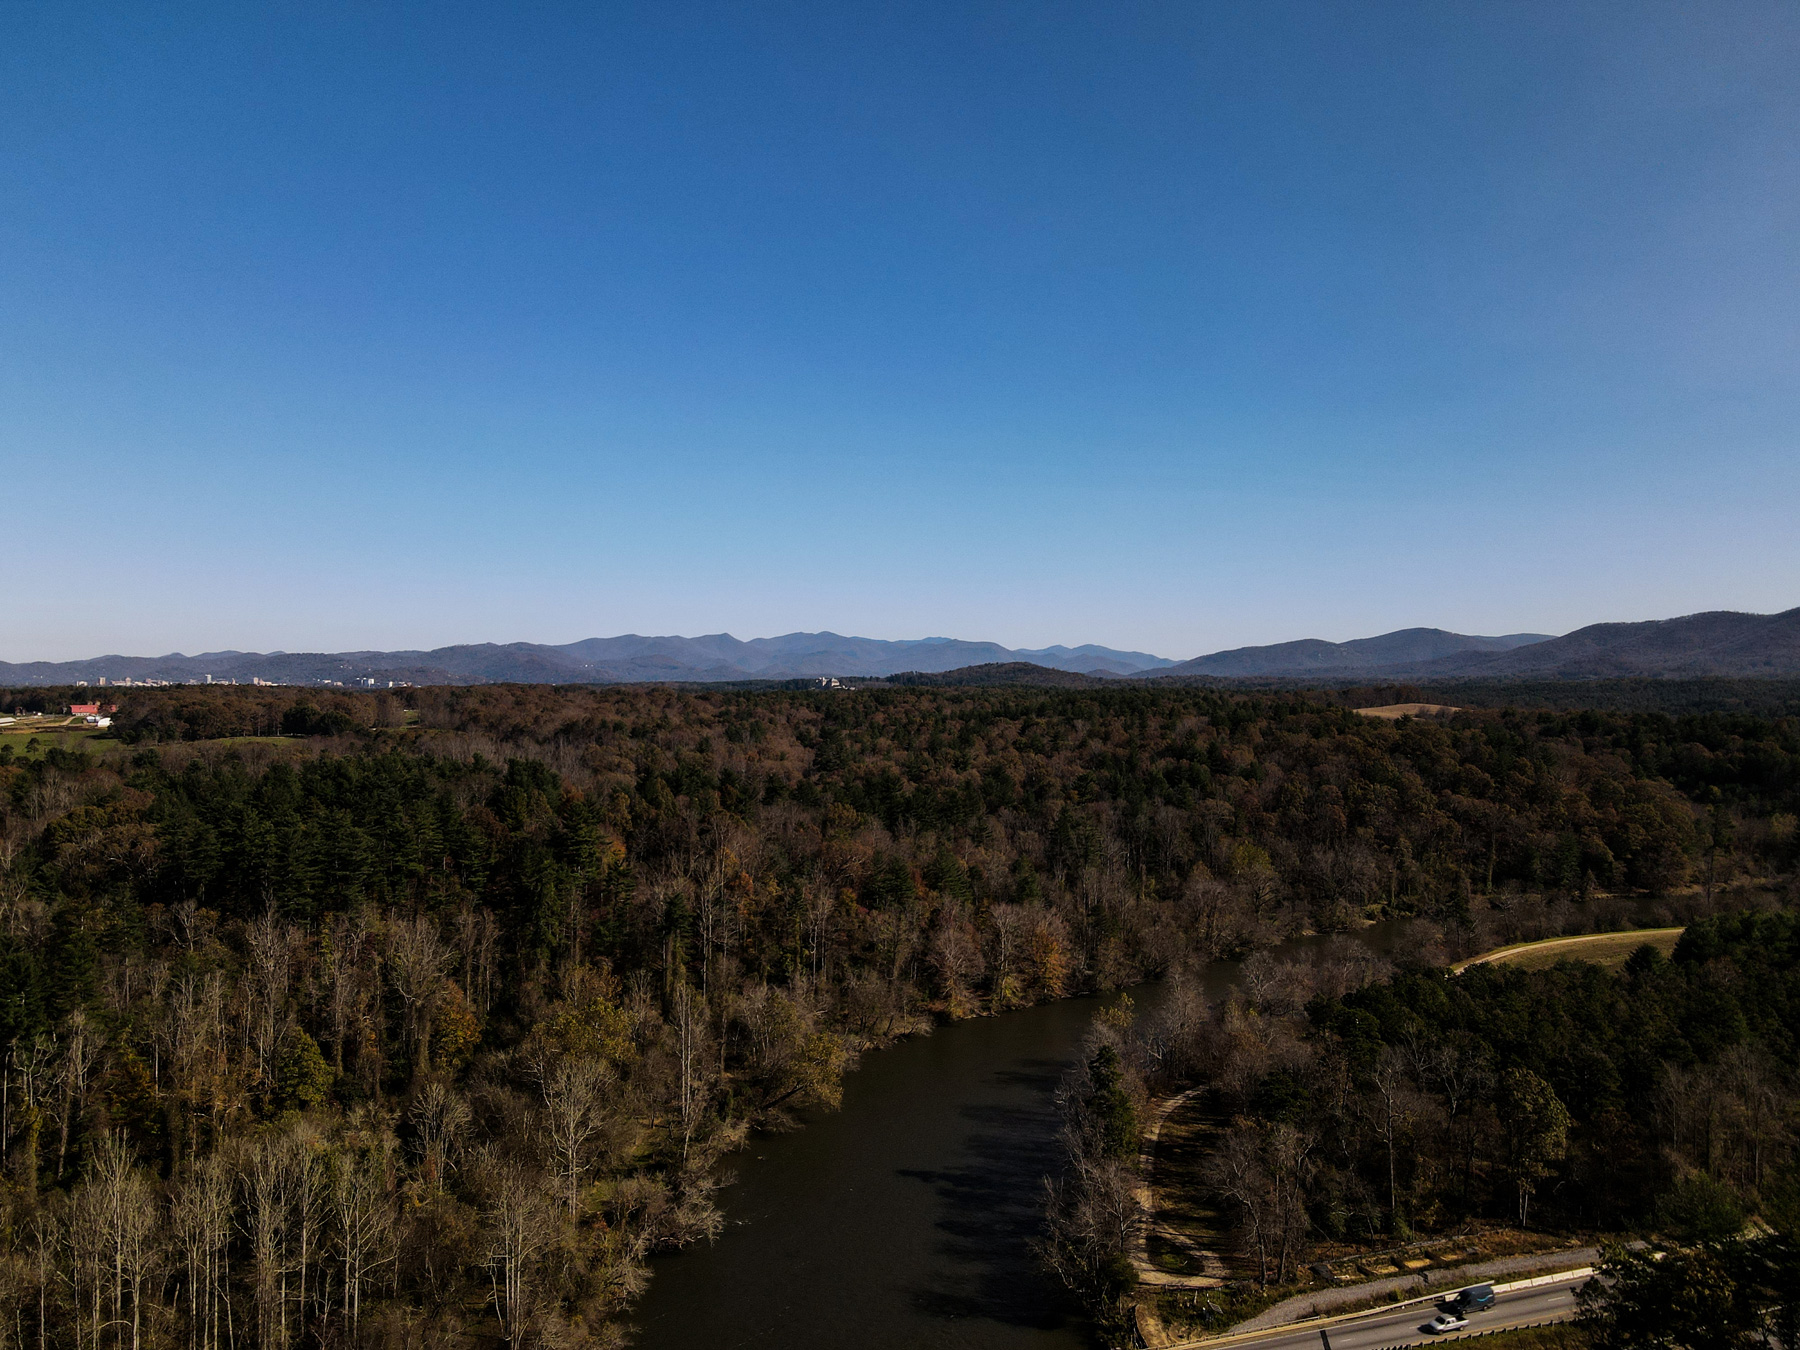 The French Broad River, Asheville, NC